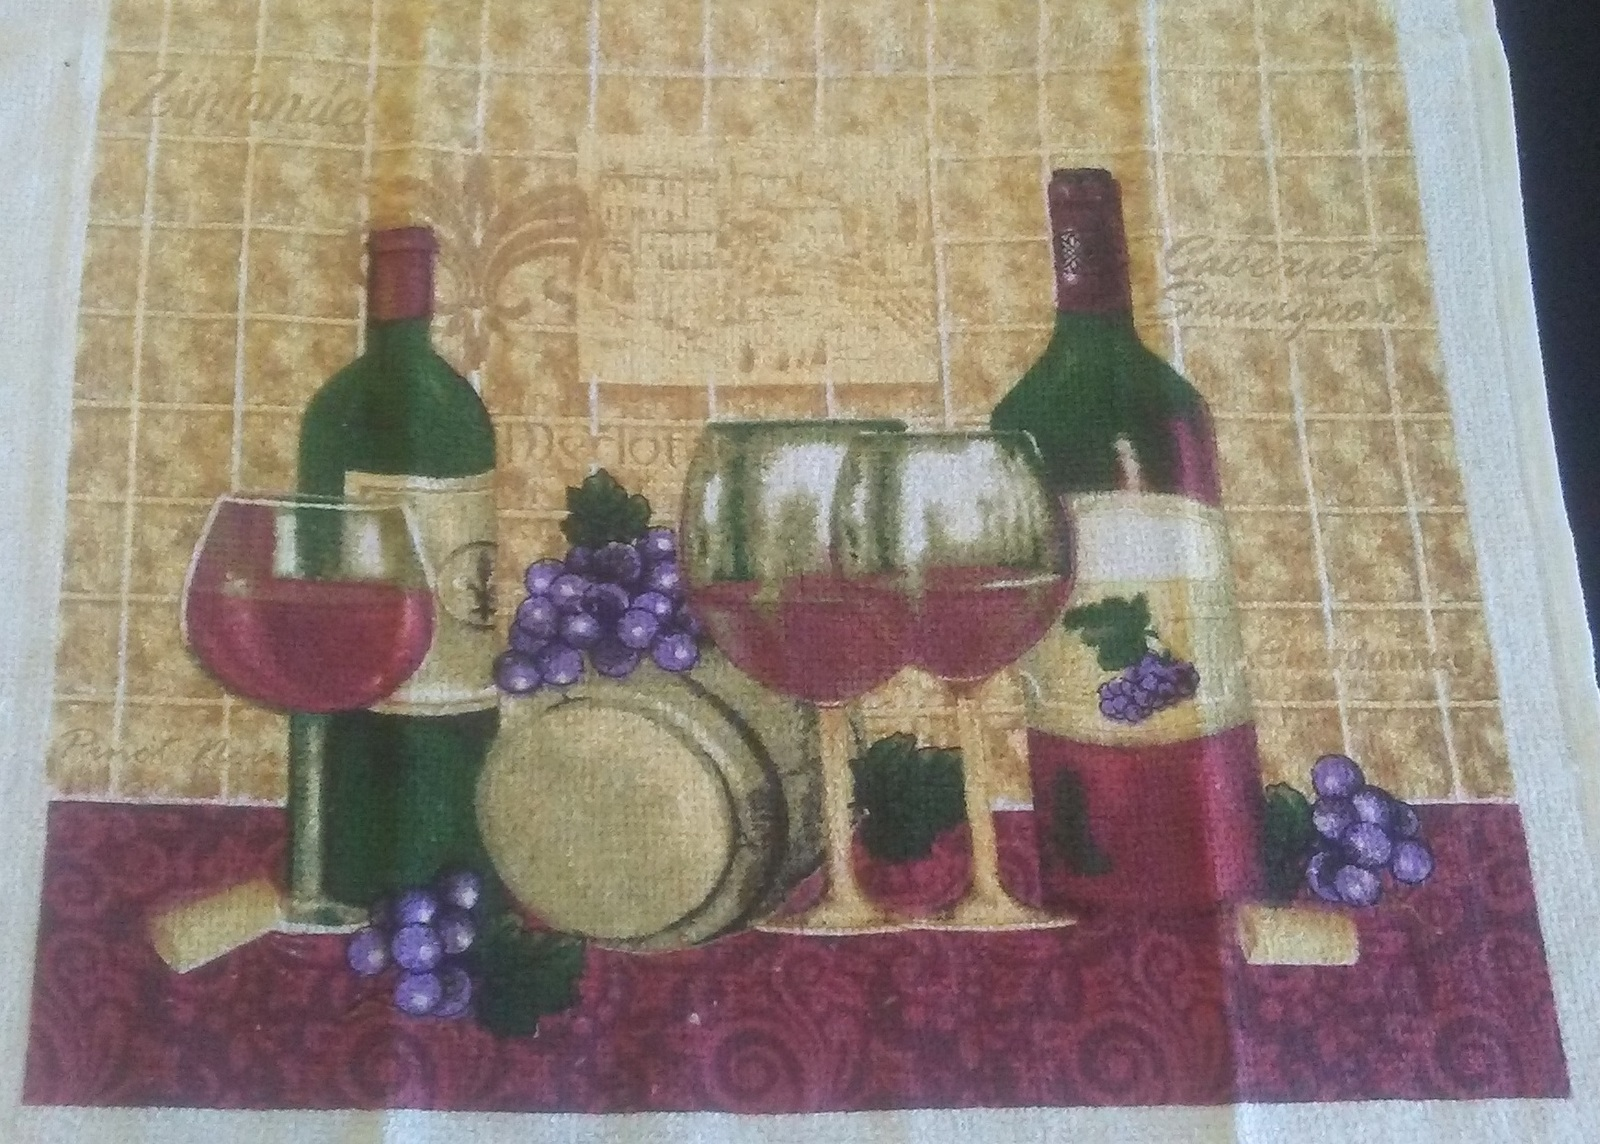 WINE THEME KITCHEN SET 3-pc Potholder Oven Mitt Towel Merlot Grapes Red NEW